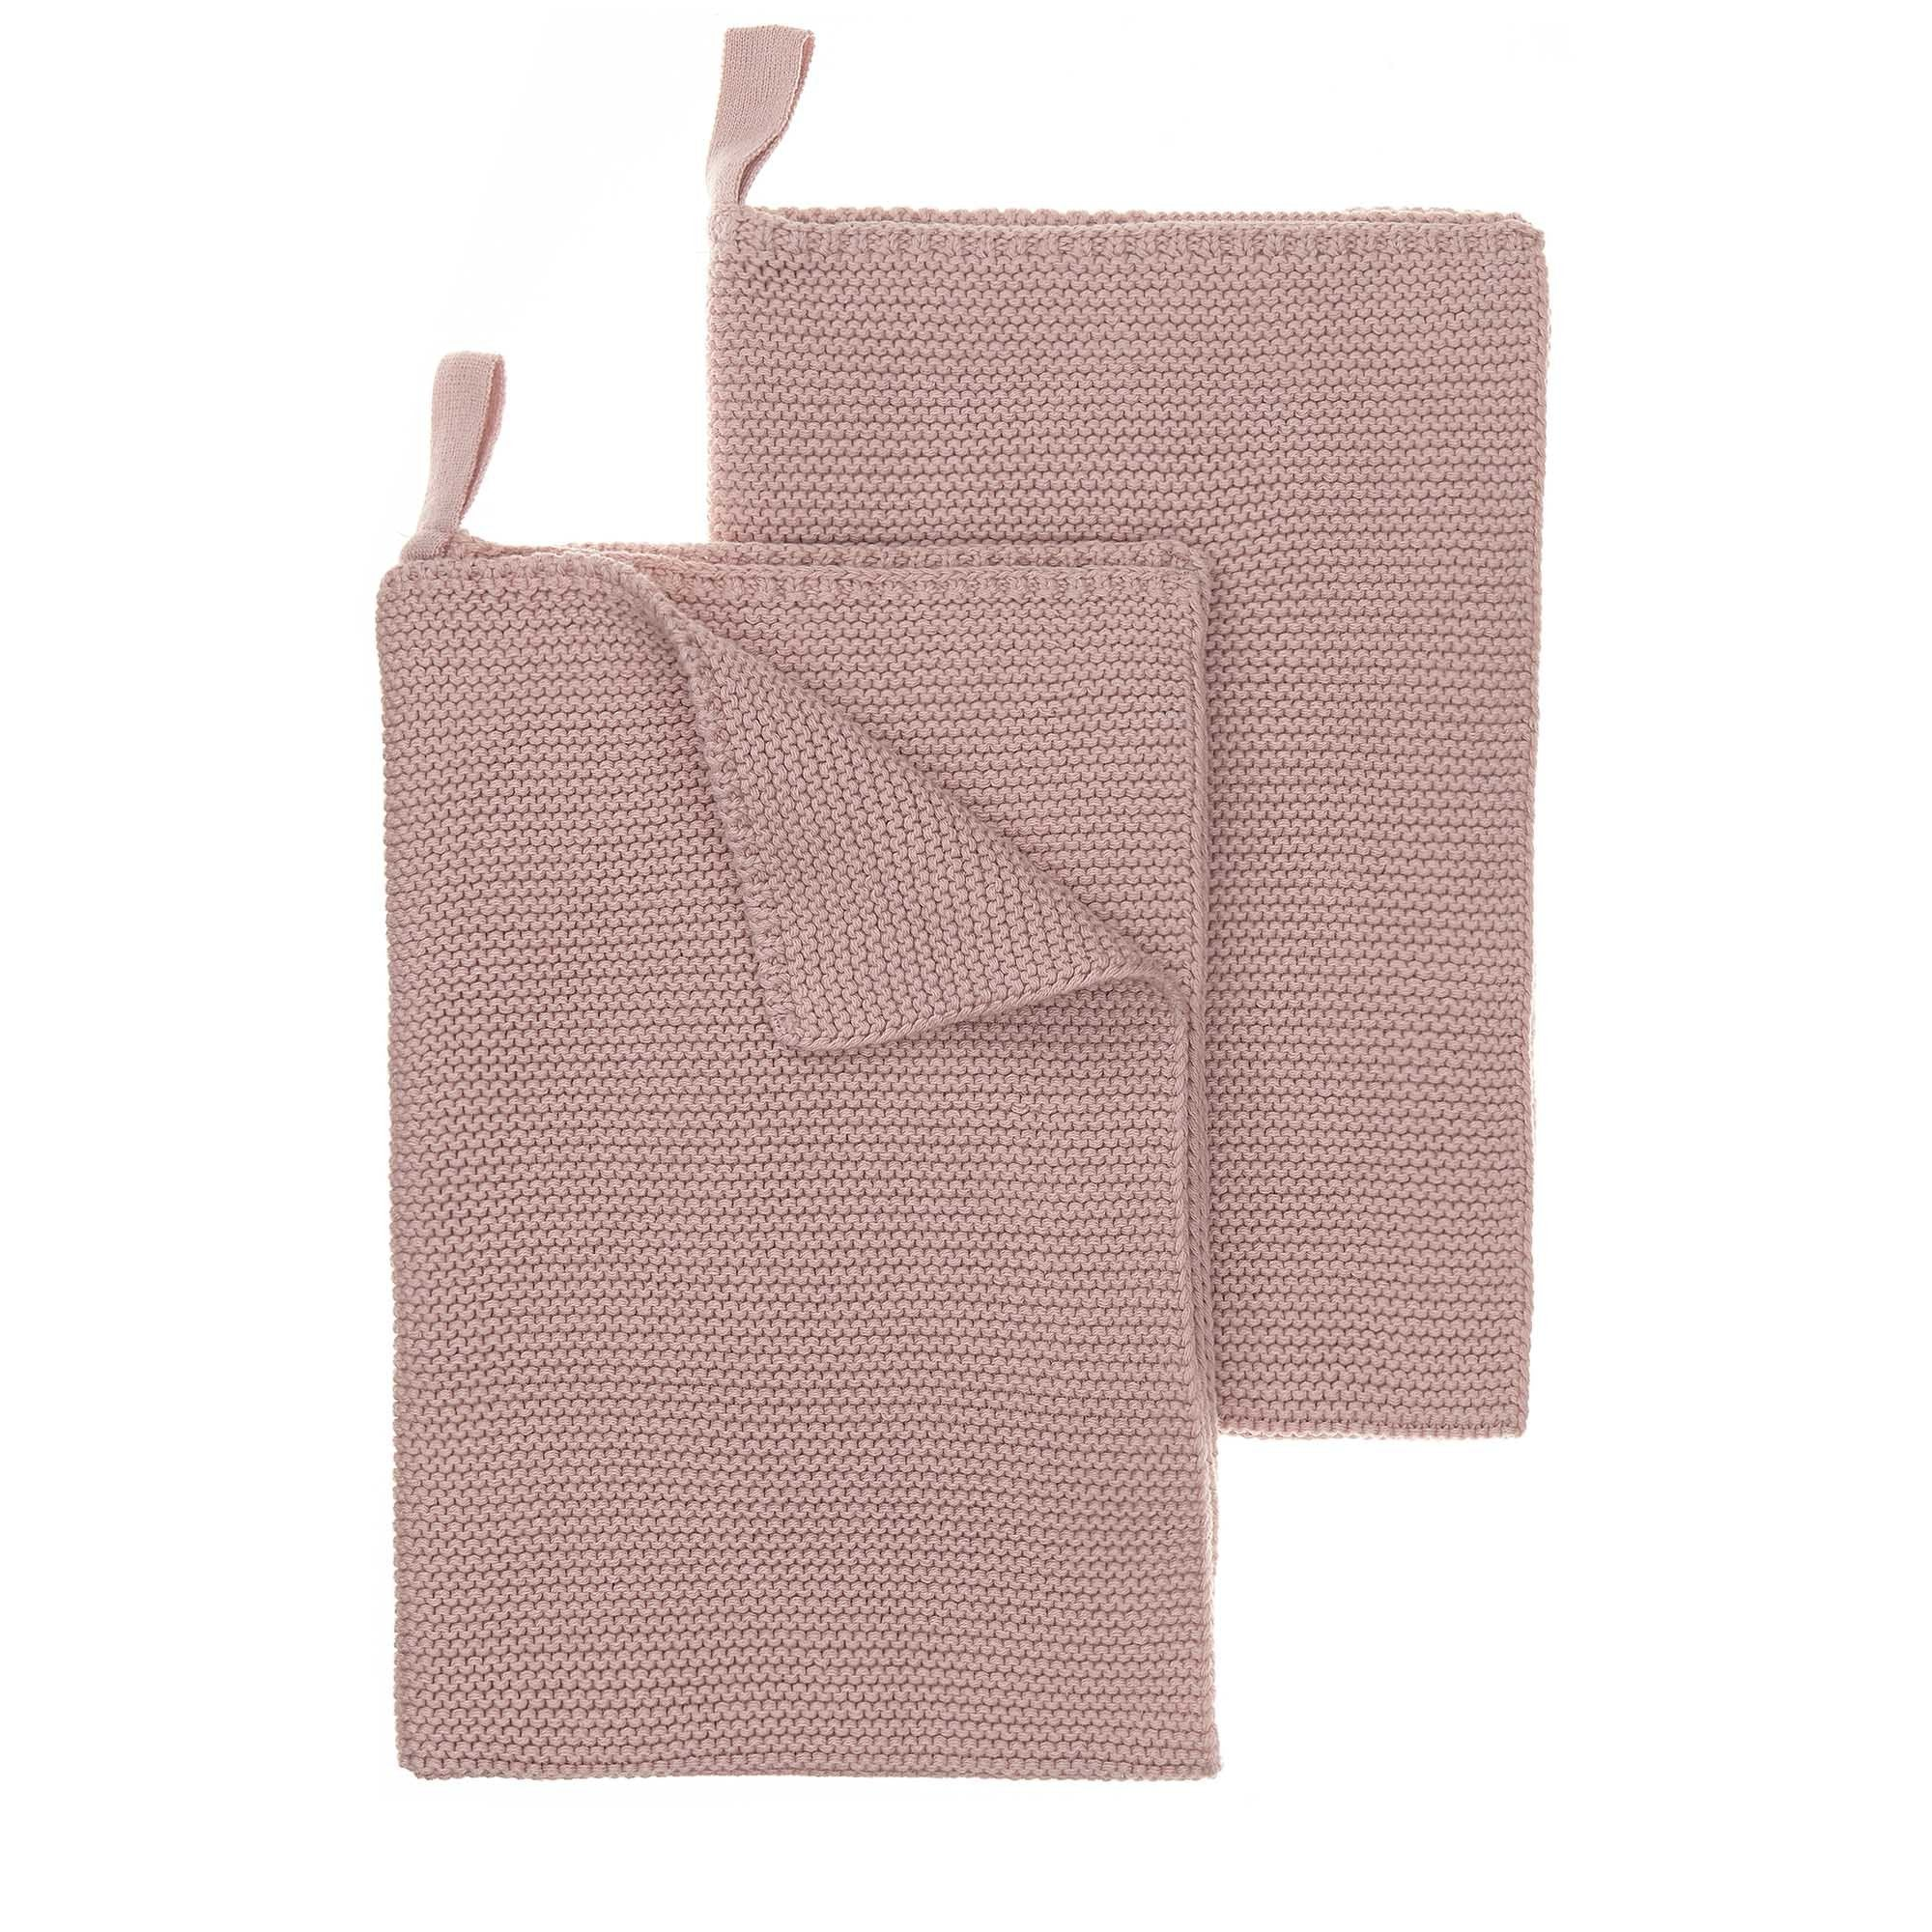 Safara dishcloth, powder pink, 100% cotton | URBANARA dishcloths